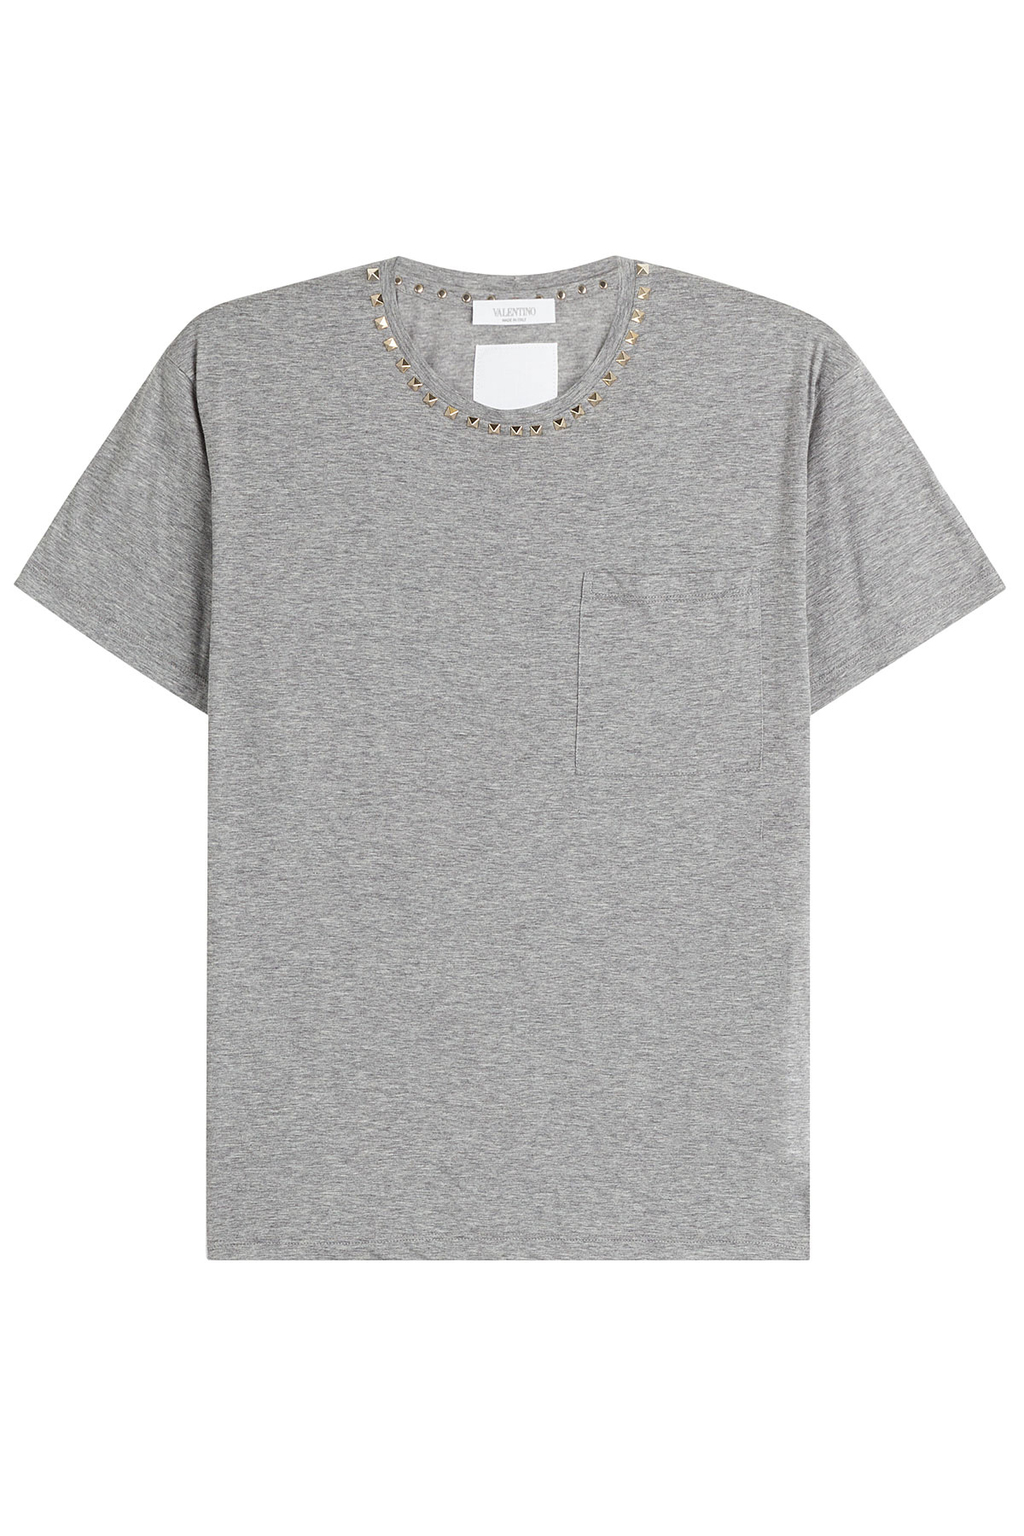 Rockstud Untitled Cotton T Shirt Grey - style: t-shirt; predominant colour: mid grey; occasions: casual; length: standard; fibres: cotton - stretch; fit: straight cut; neckline: crew; sleeve length: short sleeve; sleeve style: standard; pattern type: fabric; texture group: jersey - stretchy/drapey; embellishment: studs; pattern: marl; season: s/s 2016; wardrobe: highlight